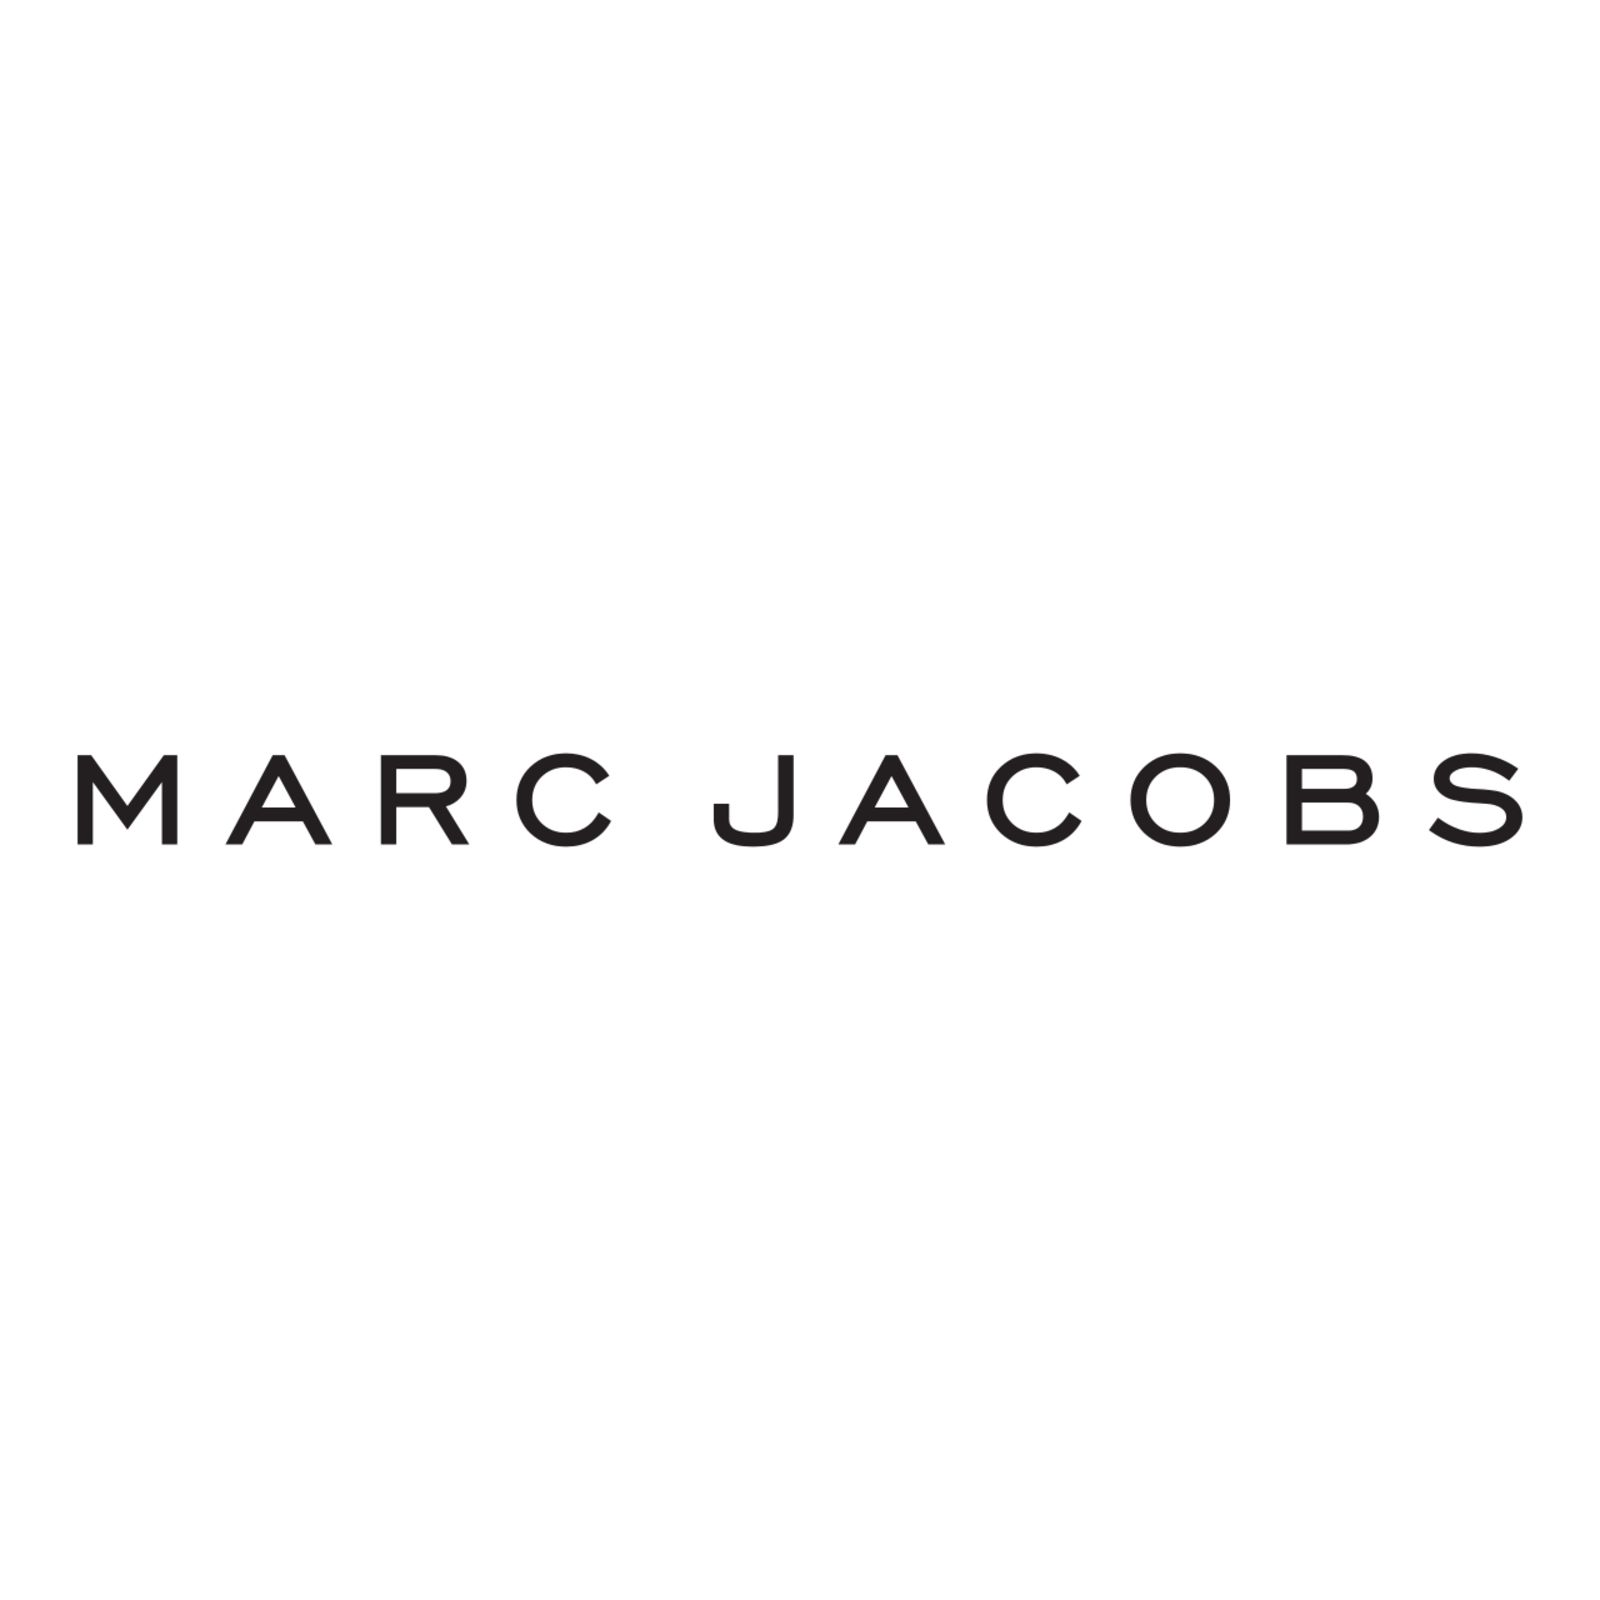 MARC JACOBS Eyewear (Bild 1)